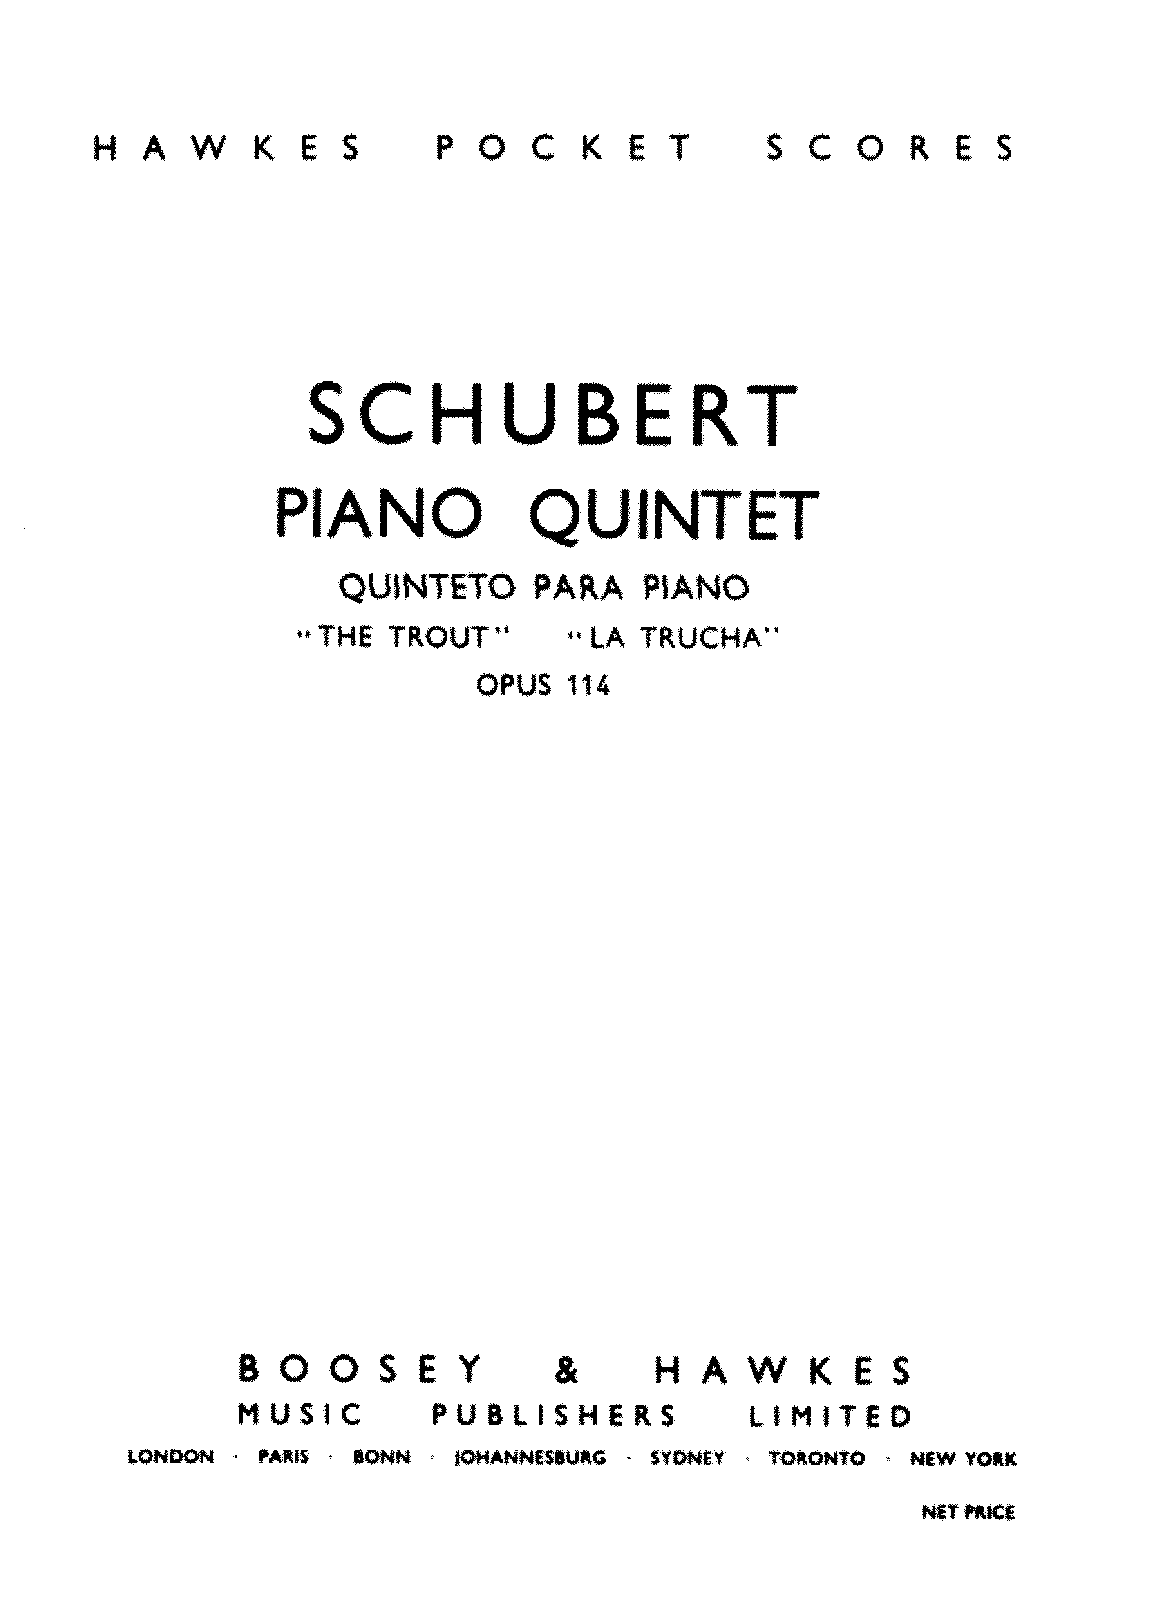 Schubert-Pianoquintet-Boosey.pdf